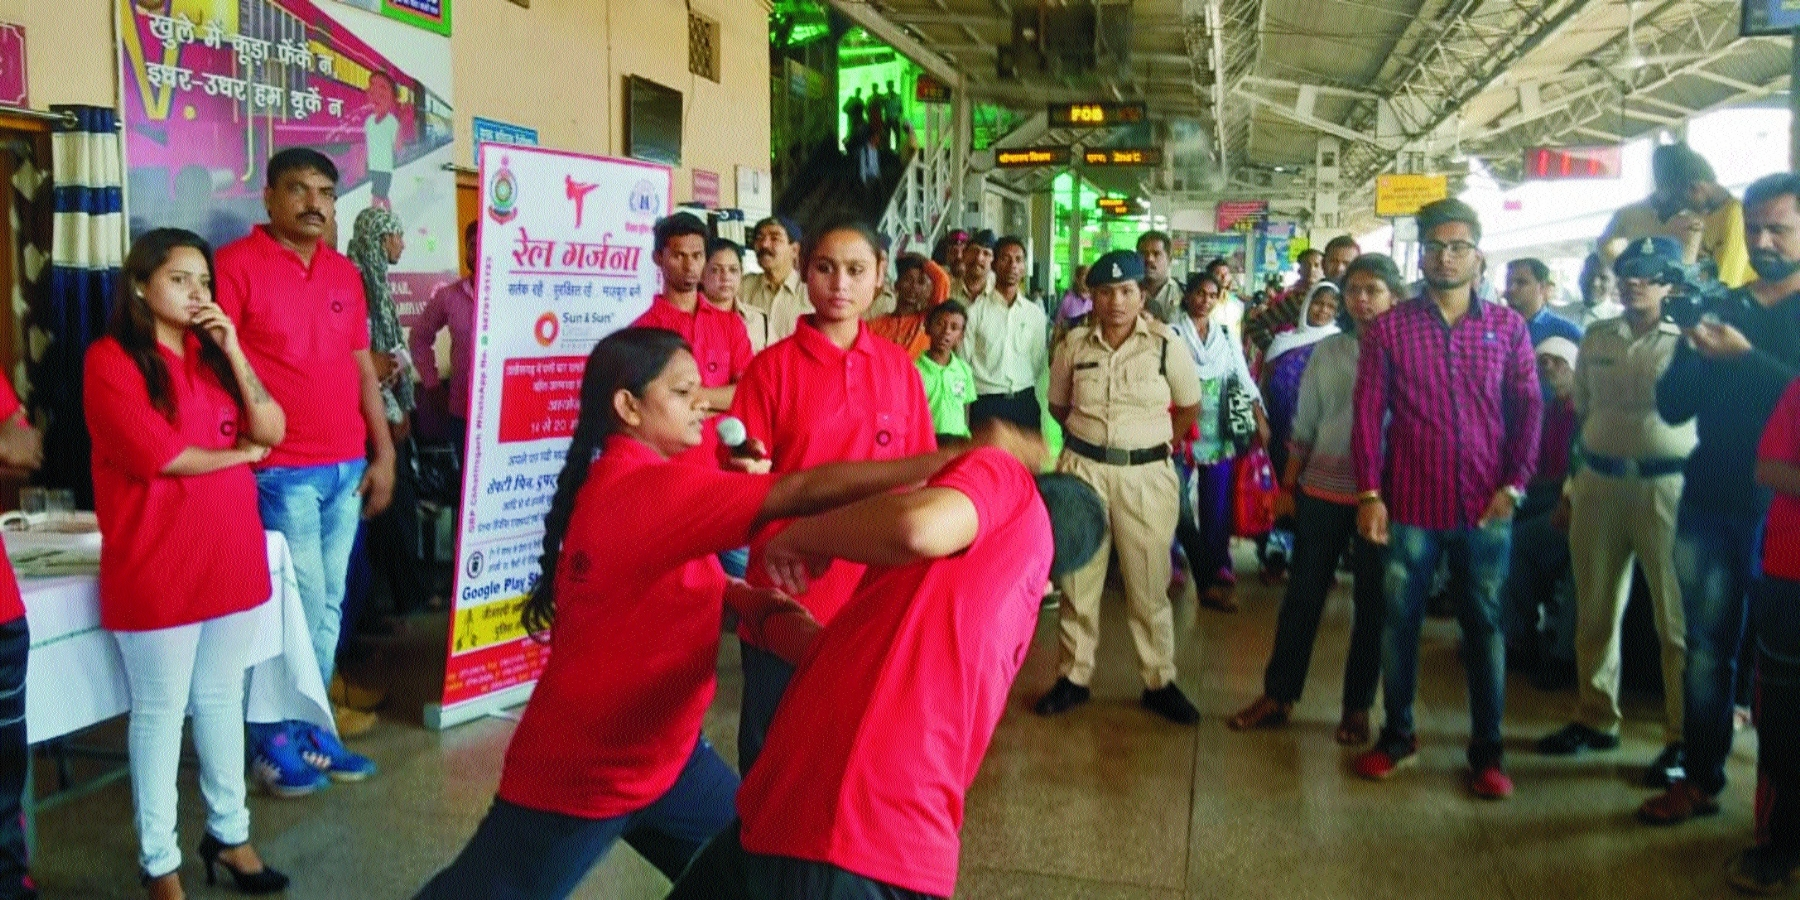 Women get self defense tips during railway journey